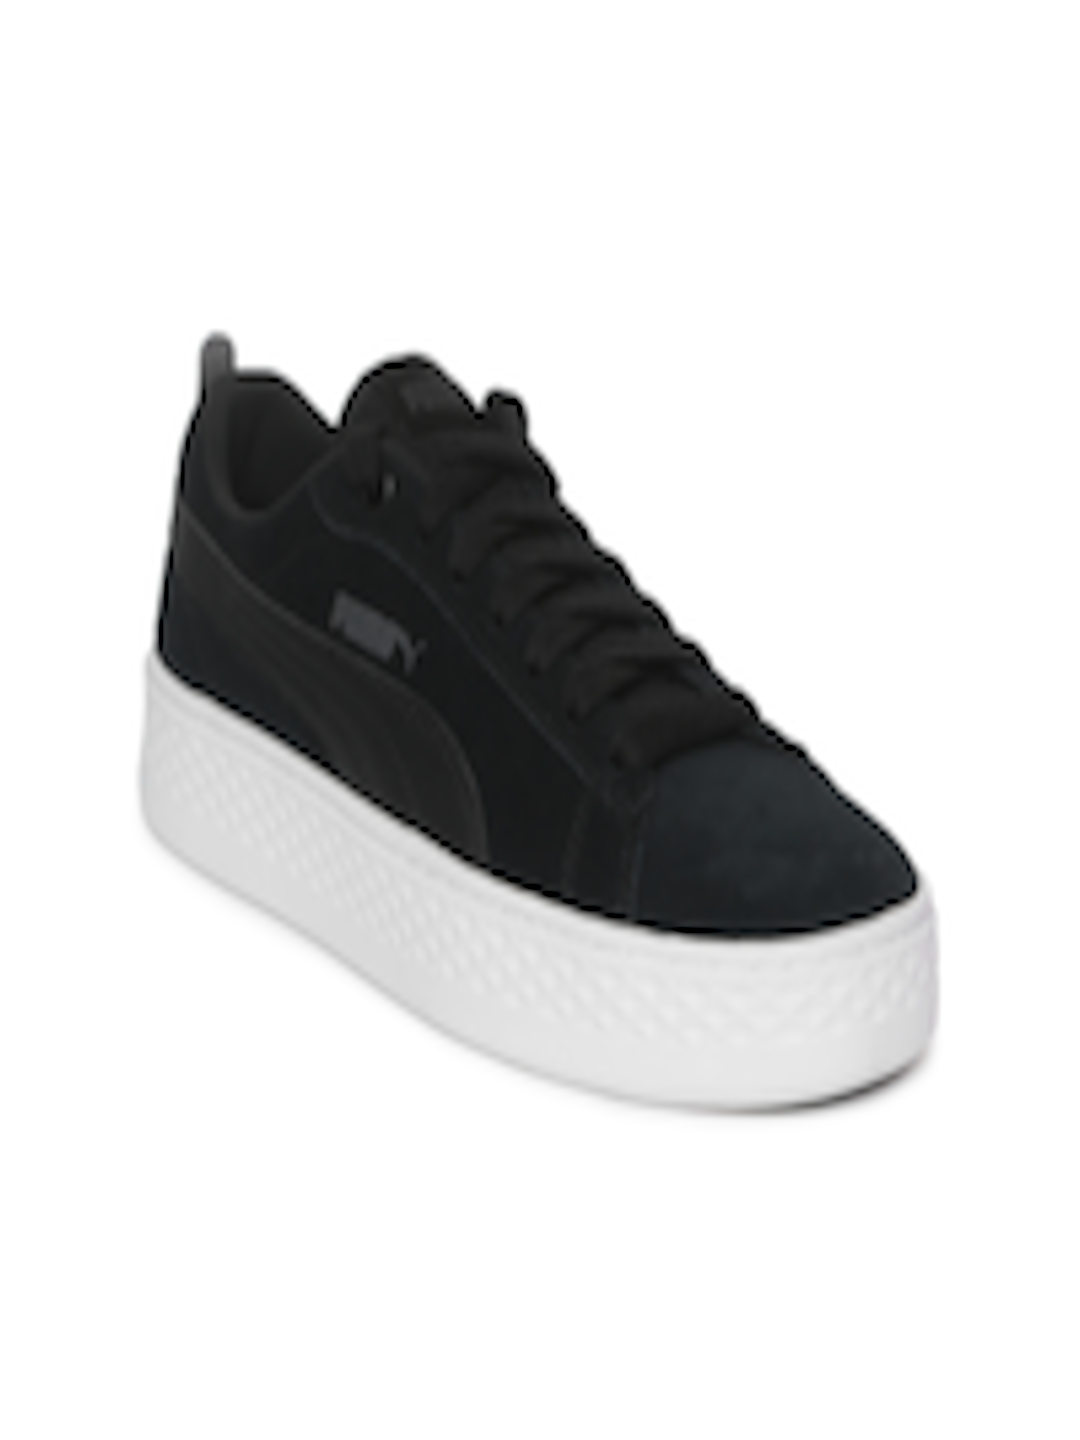 75fe421aed02 Buy Puma Women Black Smash Platform SD Suede Sneakers - Casual Shoes for  Women 7141669